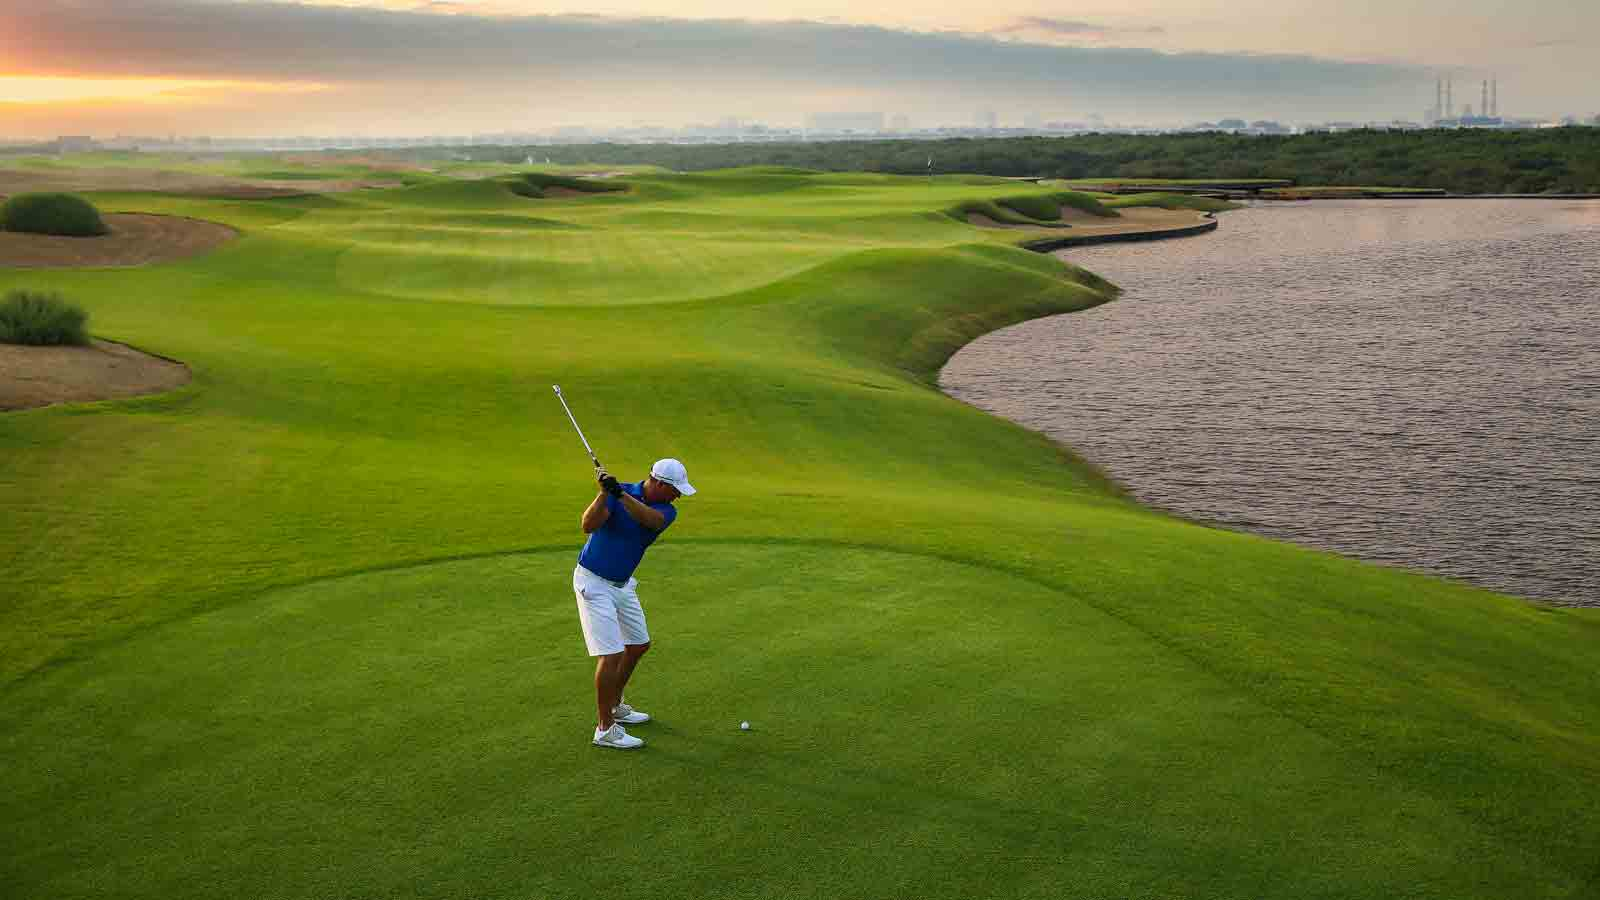 Gentleman playing golf in Ajman